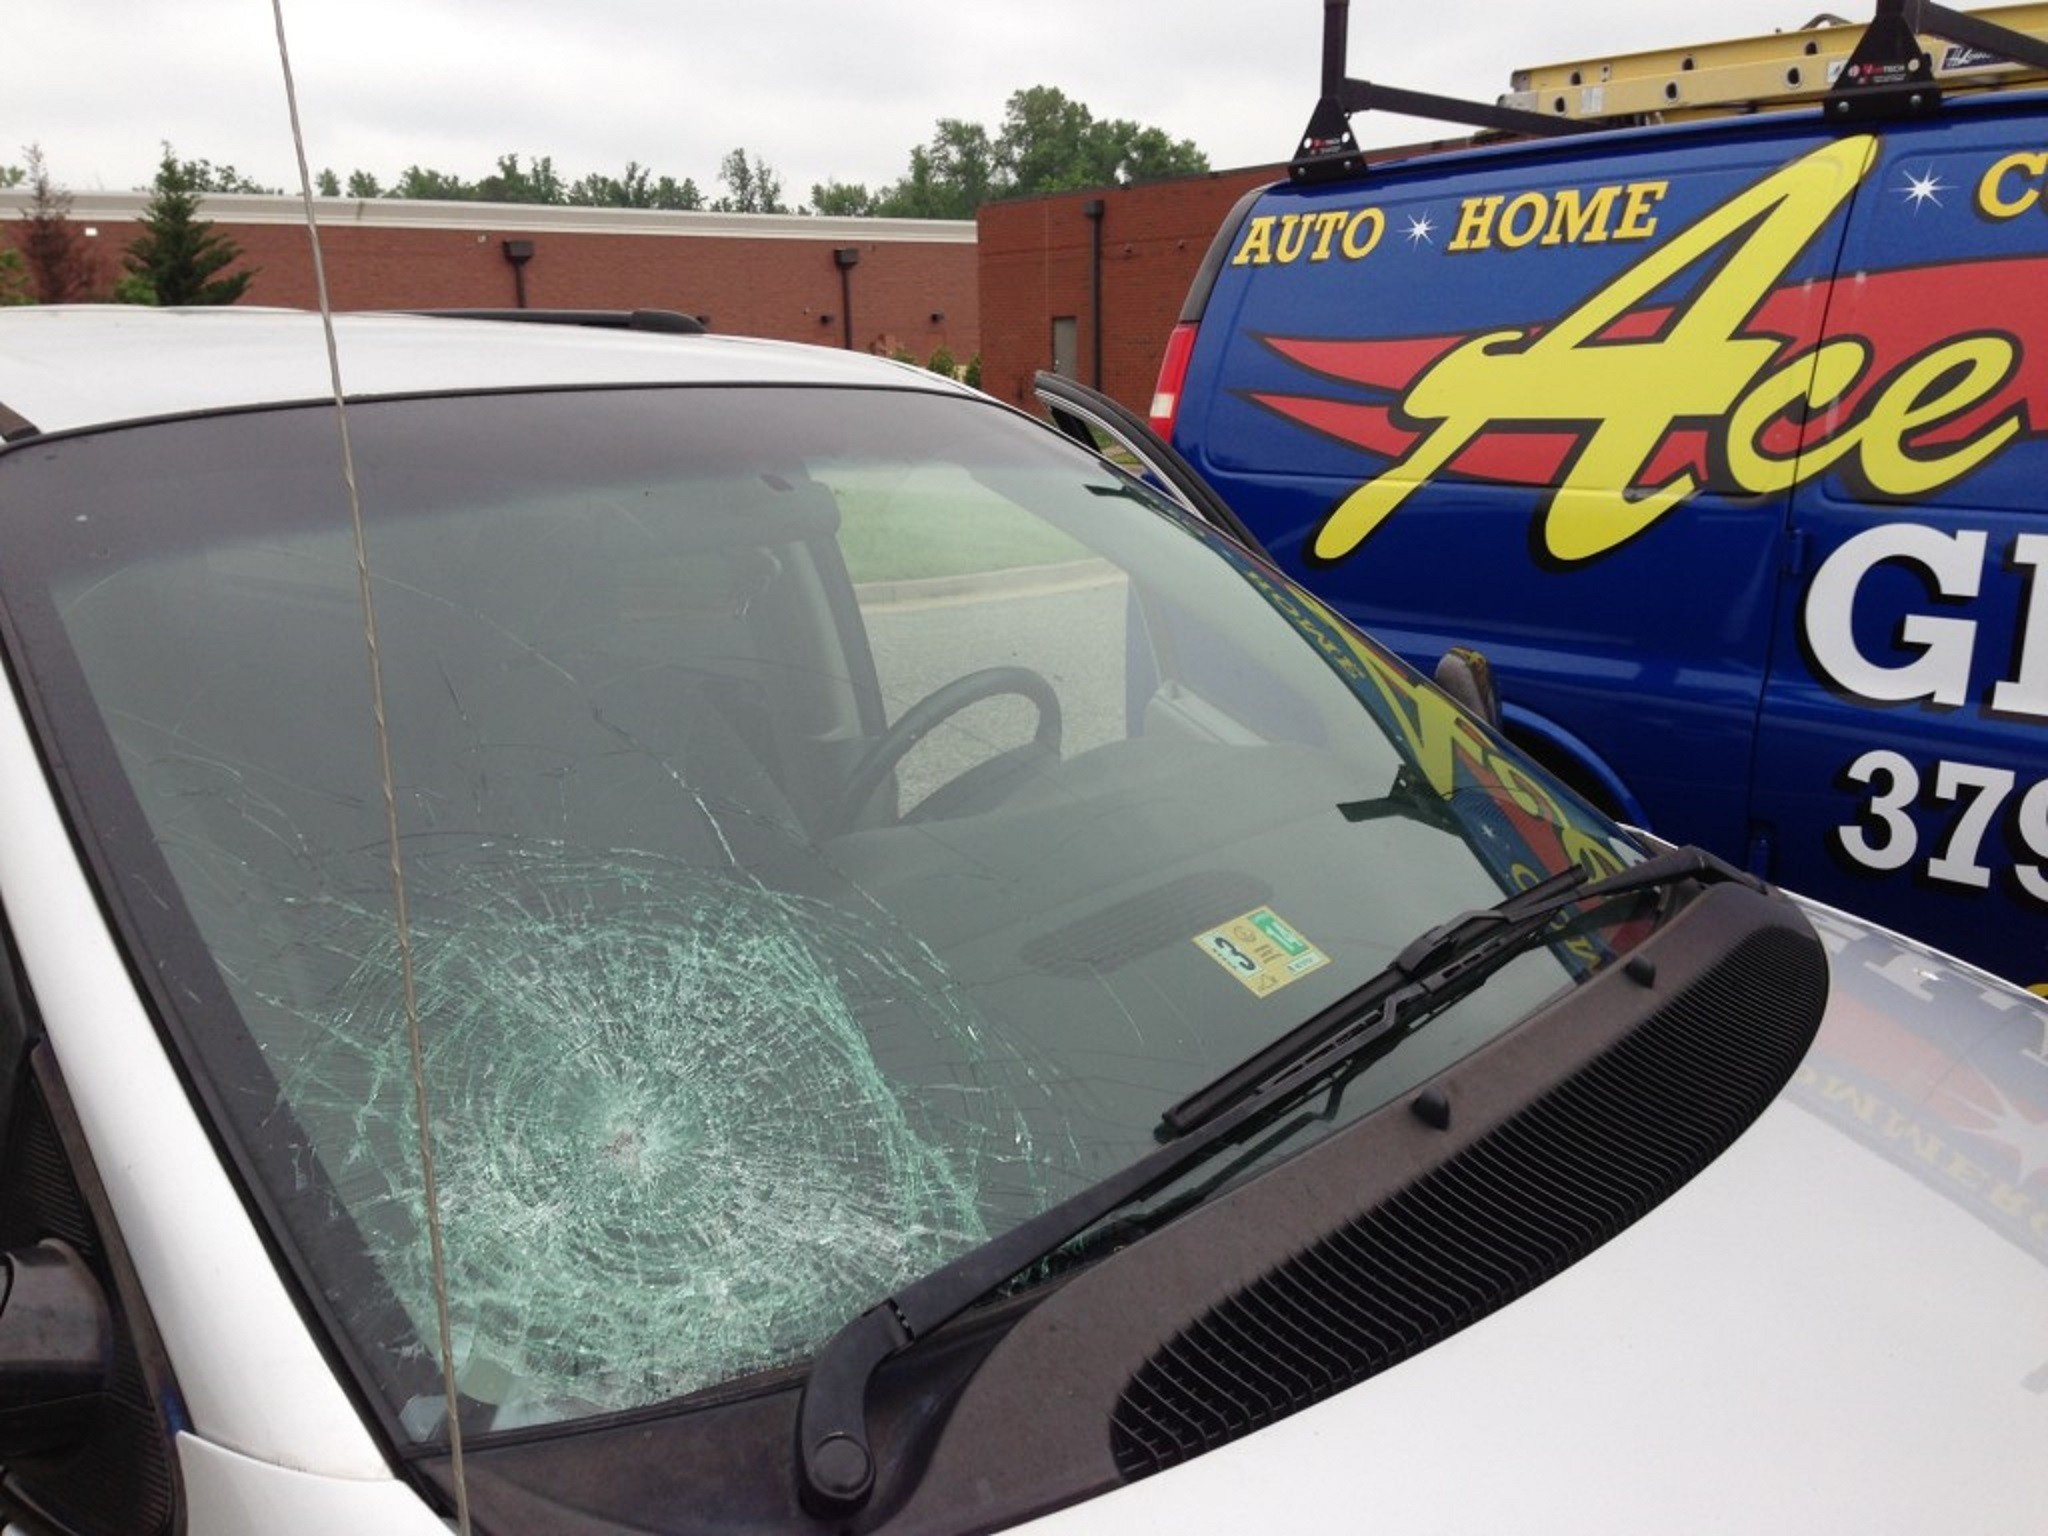 Auto Glass Repair Quotes Mobile Auto Glass Repair In Richmond Va  Ace Glass